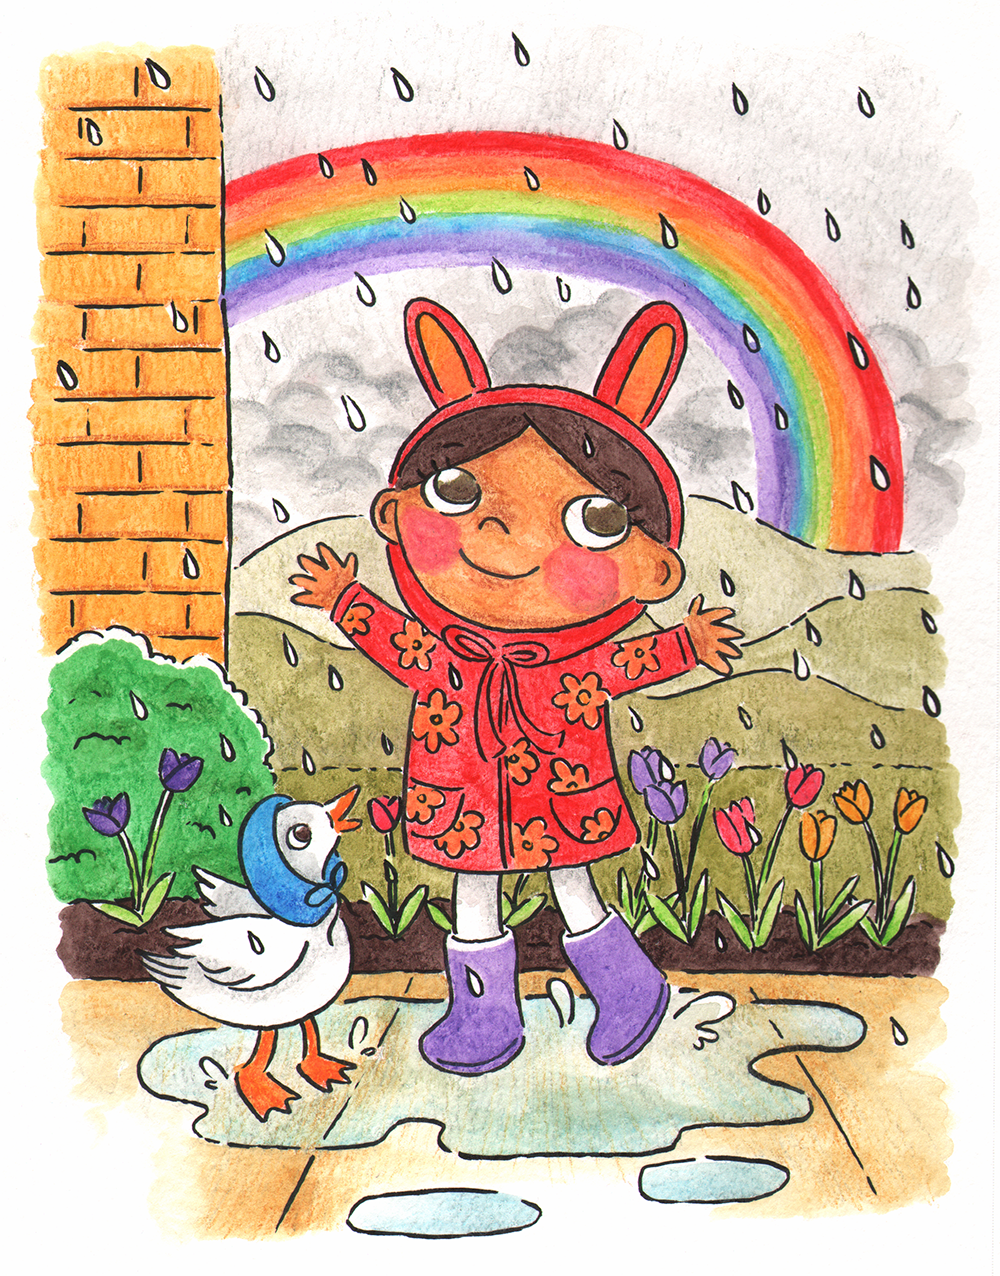 Playing in the Rain  Vida and her pet duck, Sunny, play in the rain after a storm. Watercolor pencils, 2018.